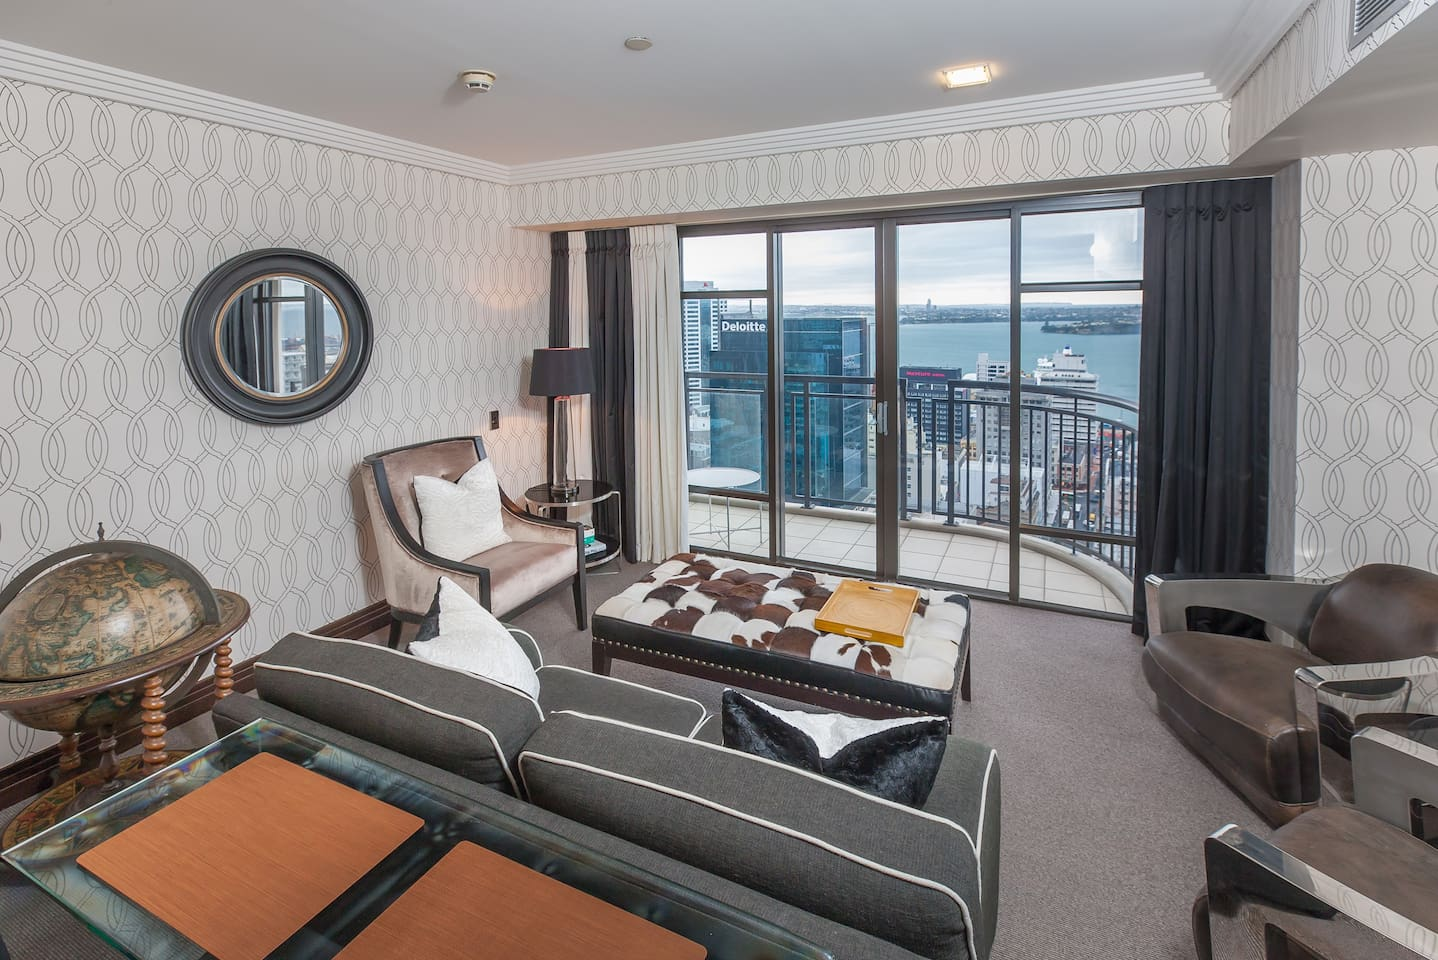 Luxurious suite with stunning views, in the heart of the city